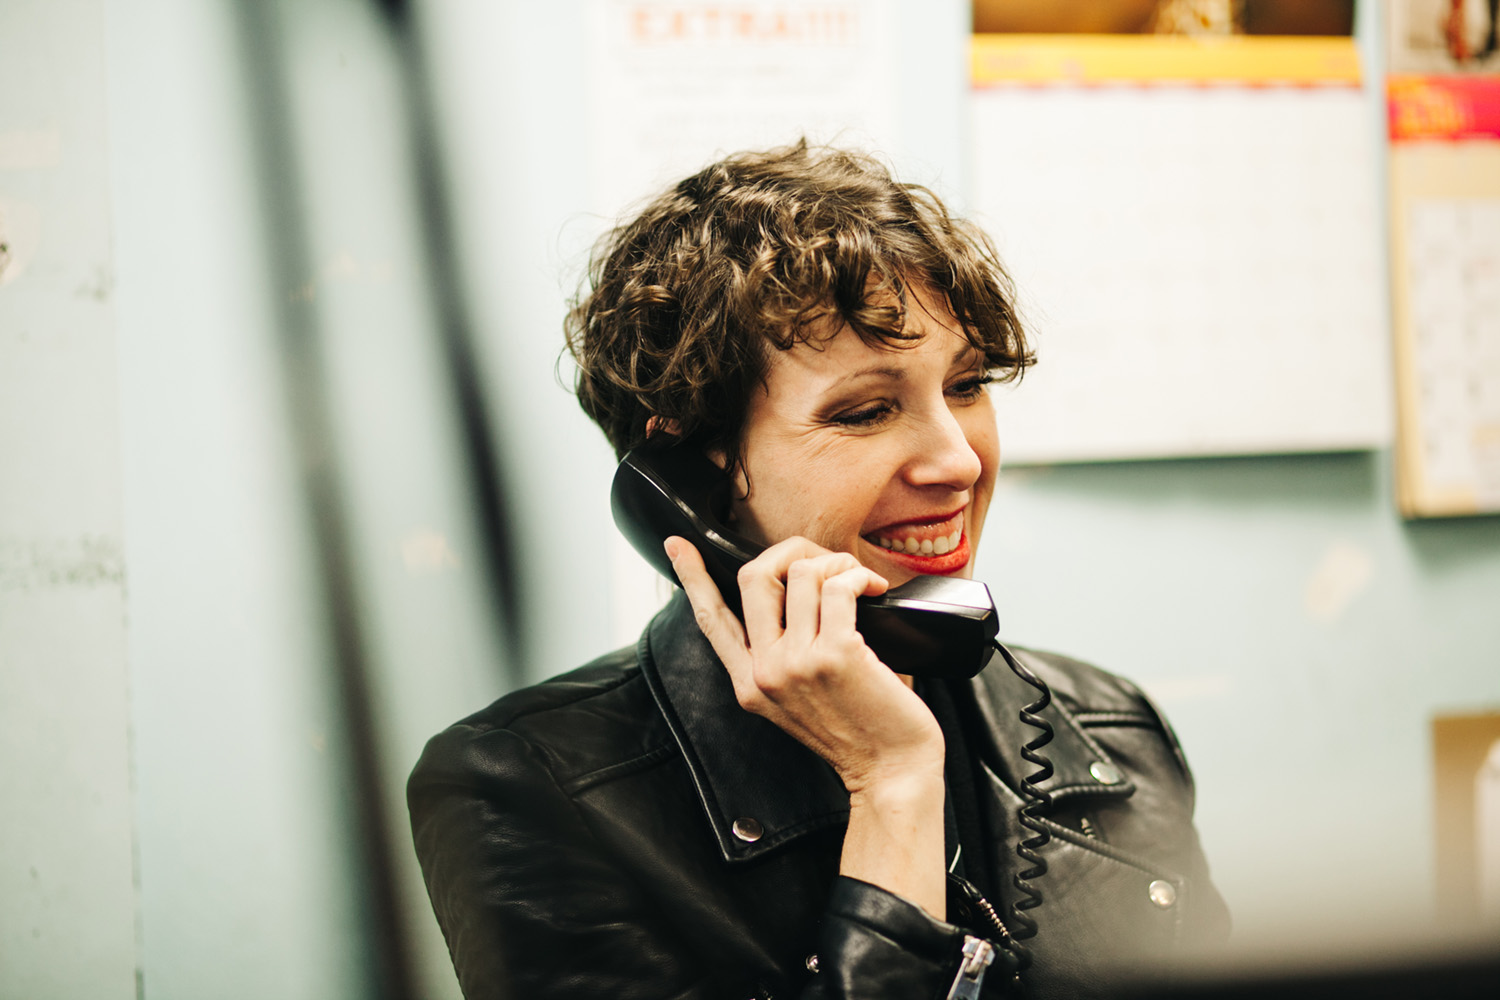 Female Radio DJ on the phone